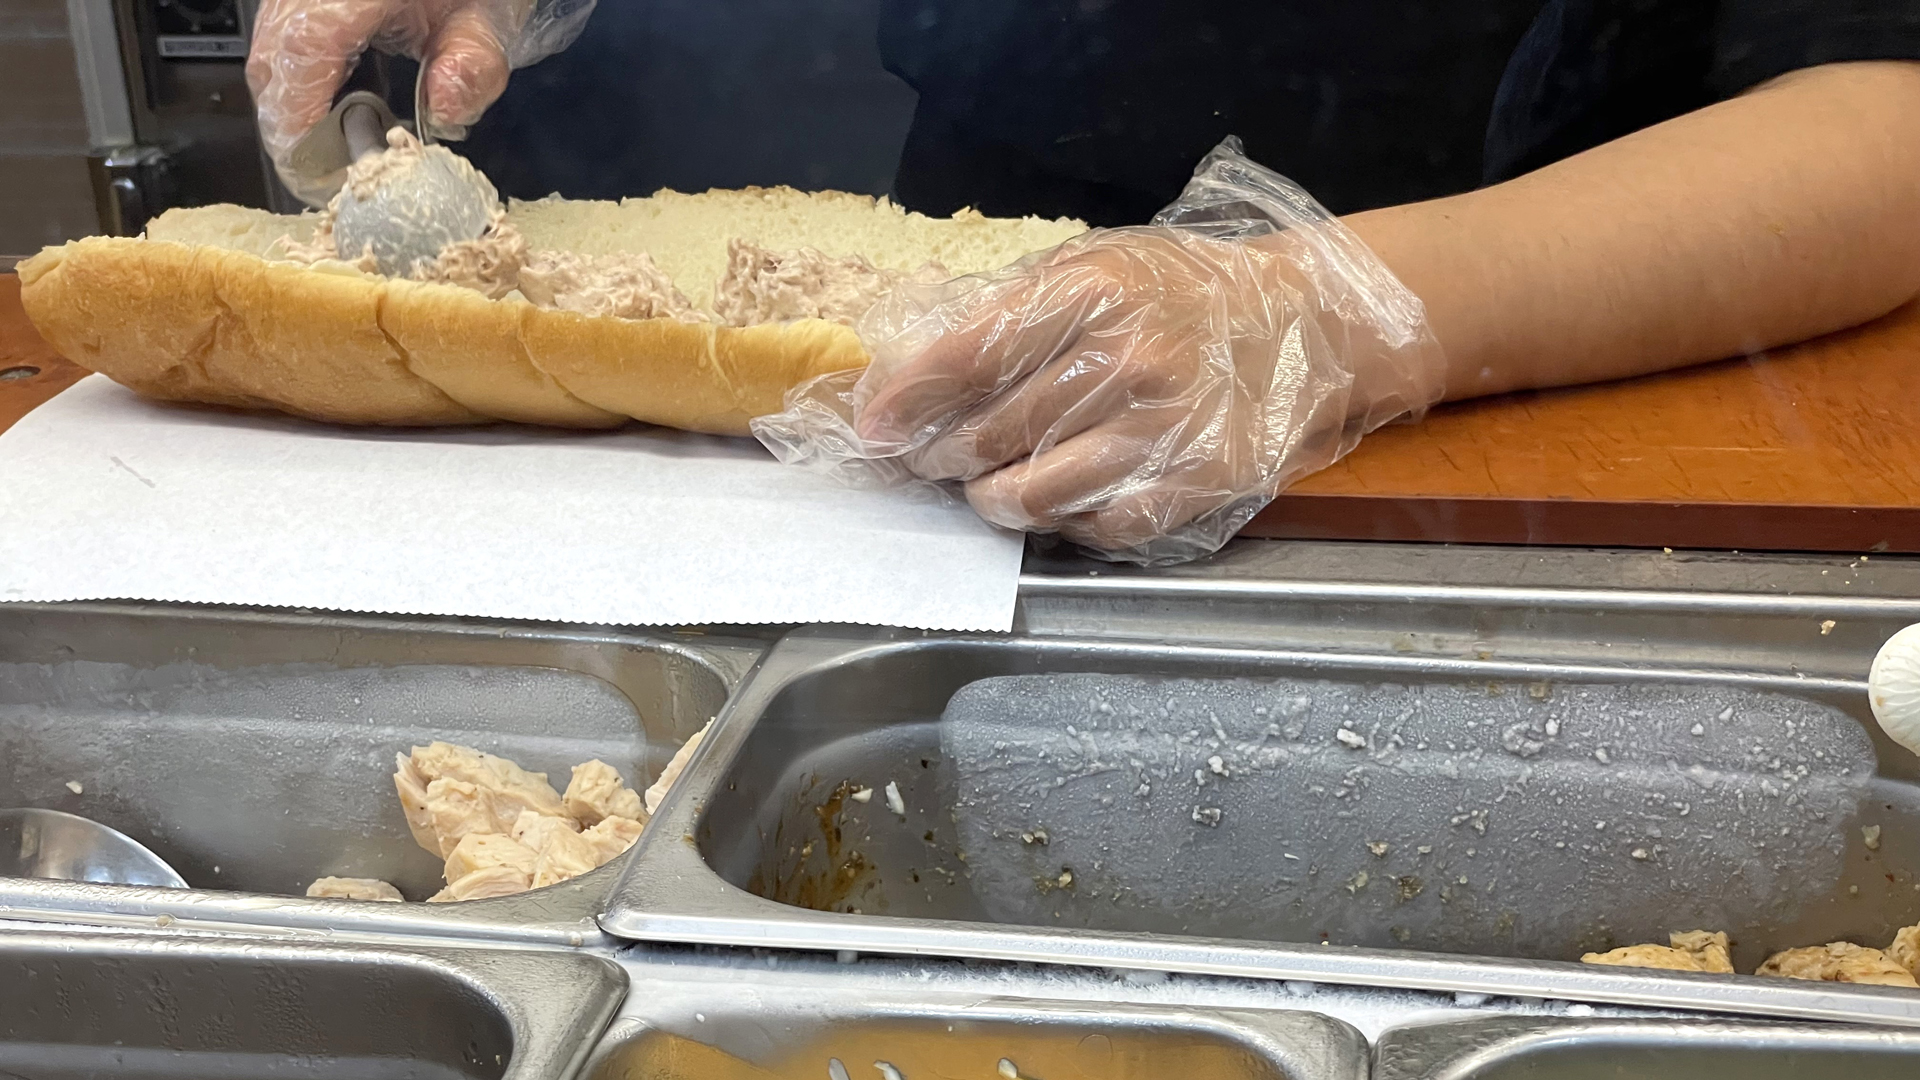 A worker at a Subway sandwich shop makes a tuna sandwich on June 22, 2021 in San Anselmo, California. A recent lab analysis of tuna used in Subway sandwiches commissioned by the New York Times did not reveal any tuna DNA in samples taken from Subway tuna sandwiches. The lab was unable to pinpoint a species in the tuna samples from three Los Angeles area Subway sandwich shops. (Justin Sullivan/Getty Images)